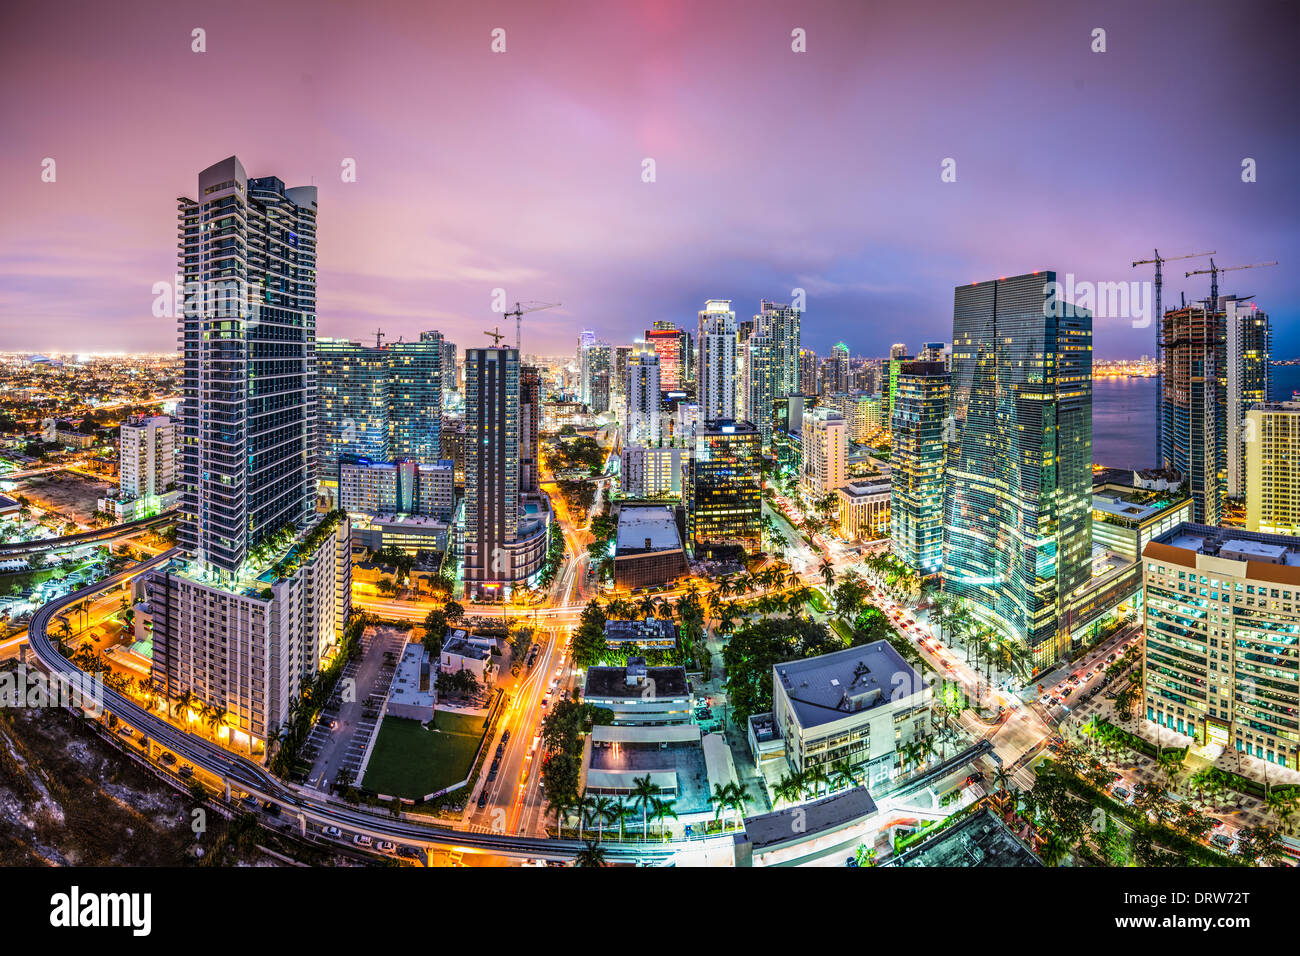 Miami, Florida aerial view of downtown. - Stock Image